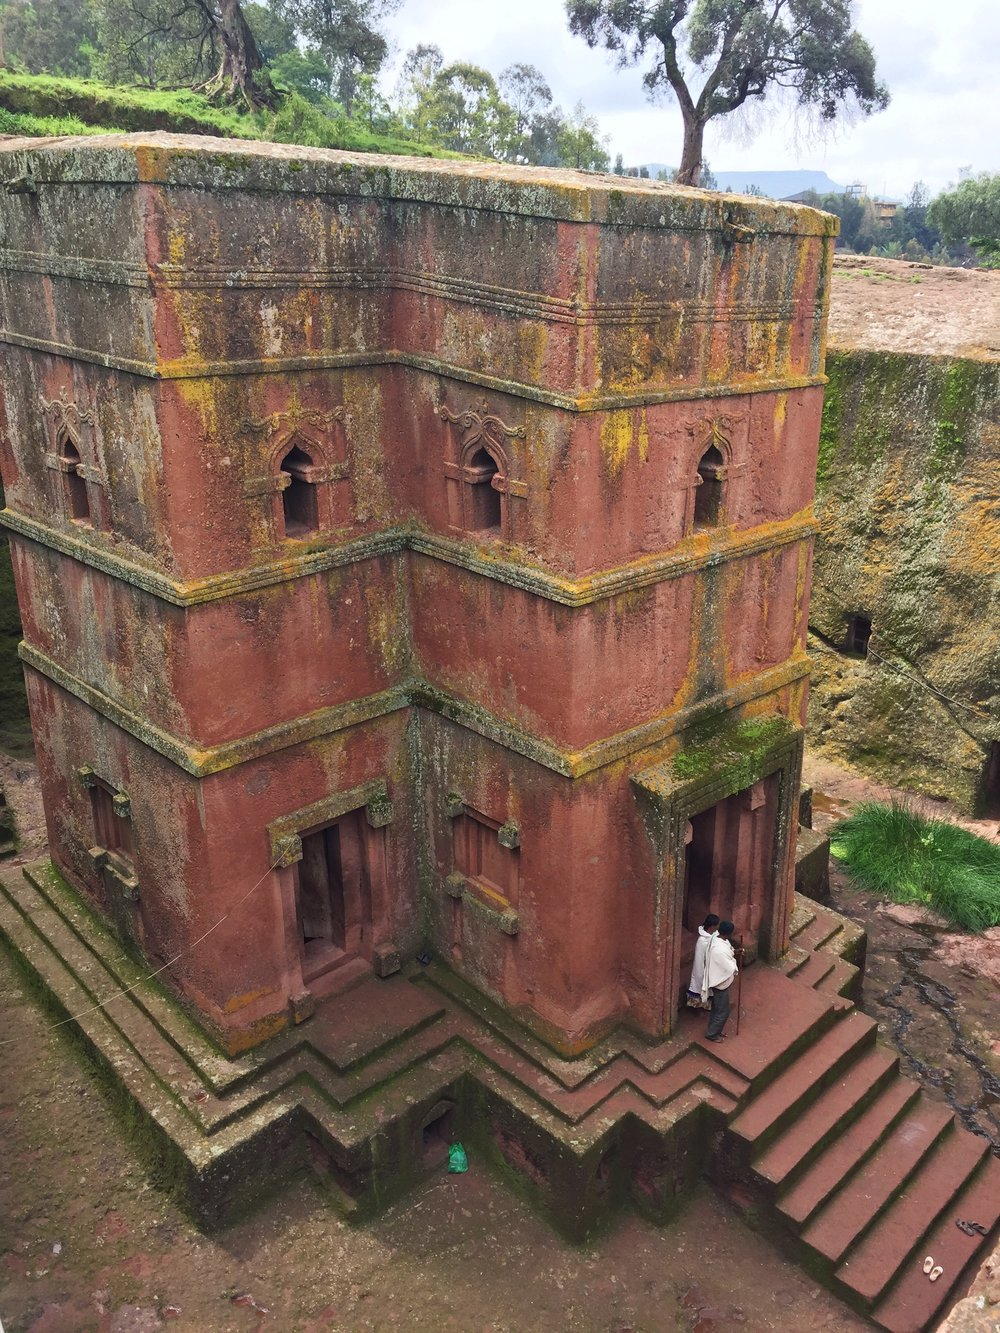 Church of St. George, one of eleven rock-hewn churches in Lalibela